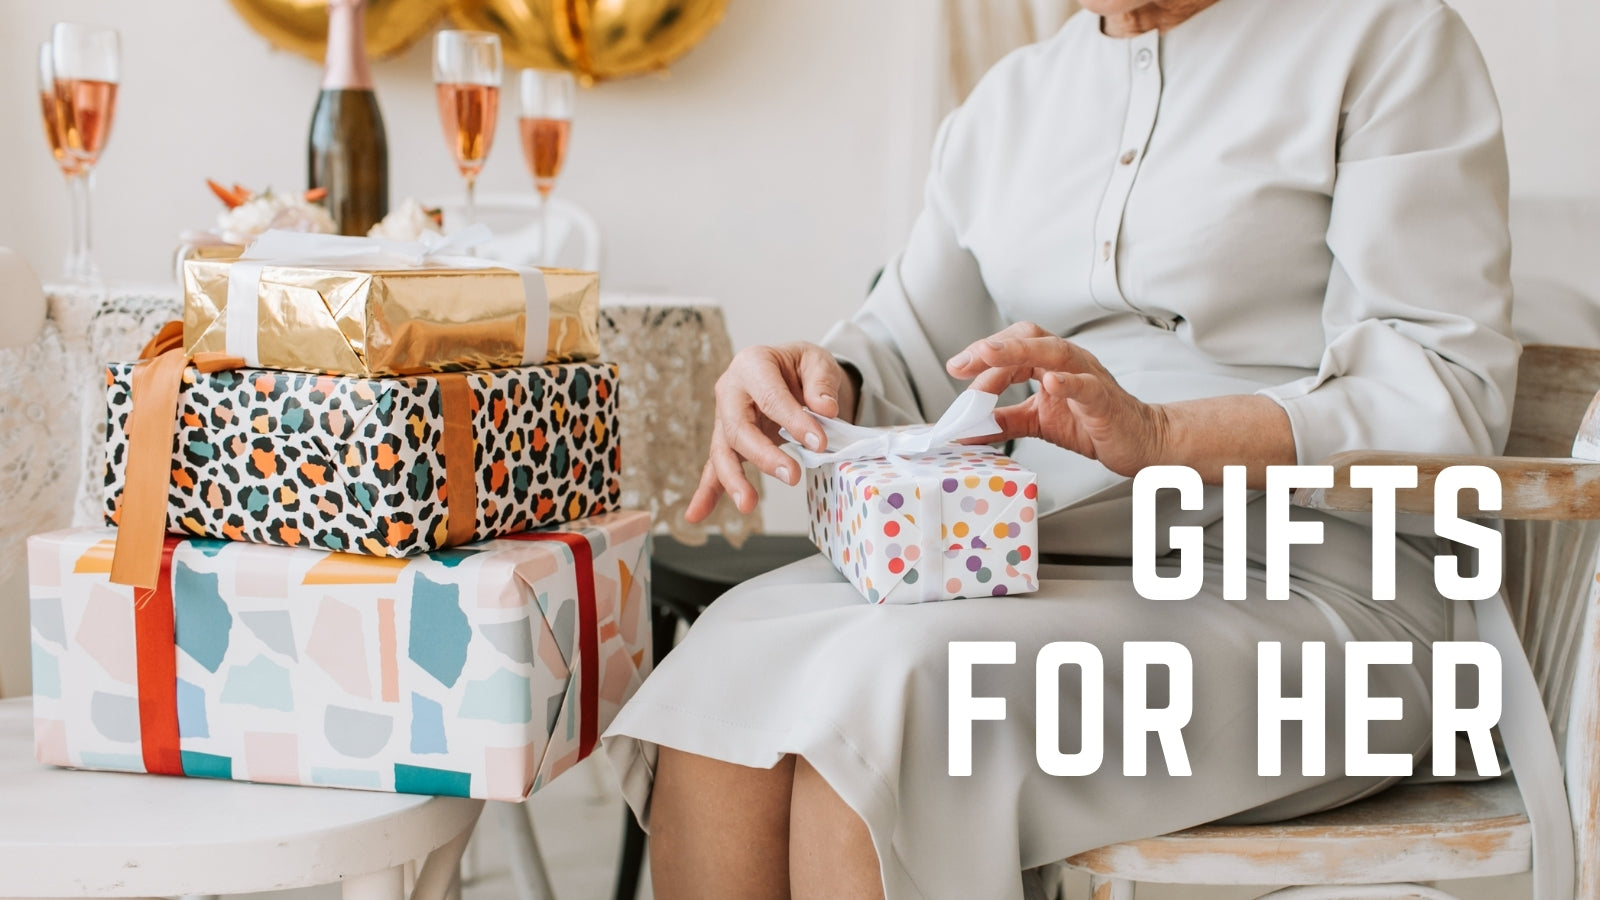 Gifts for Her collection. Candles. Apparel. Home accessories. Books. Jewellery. Bath and Beauty.